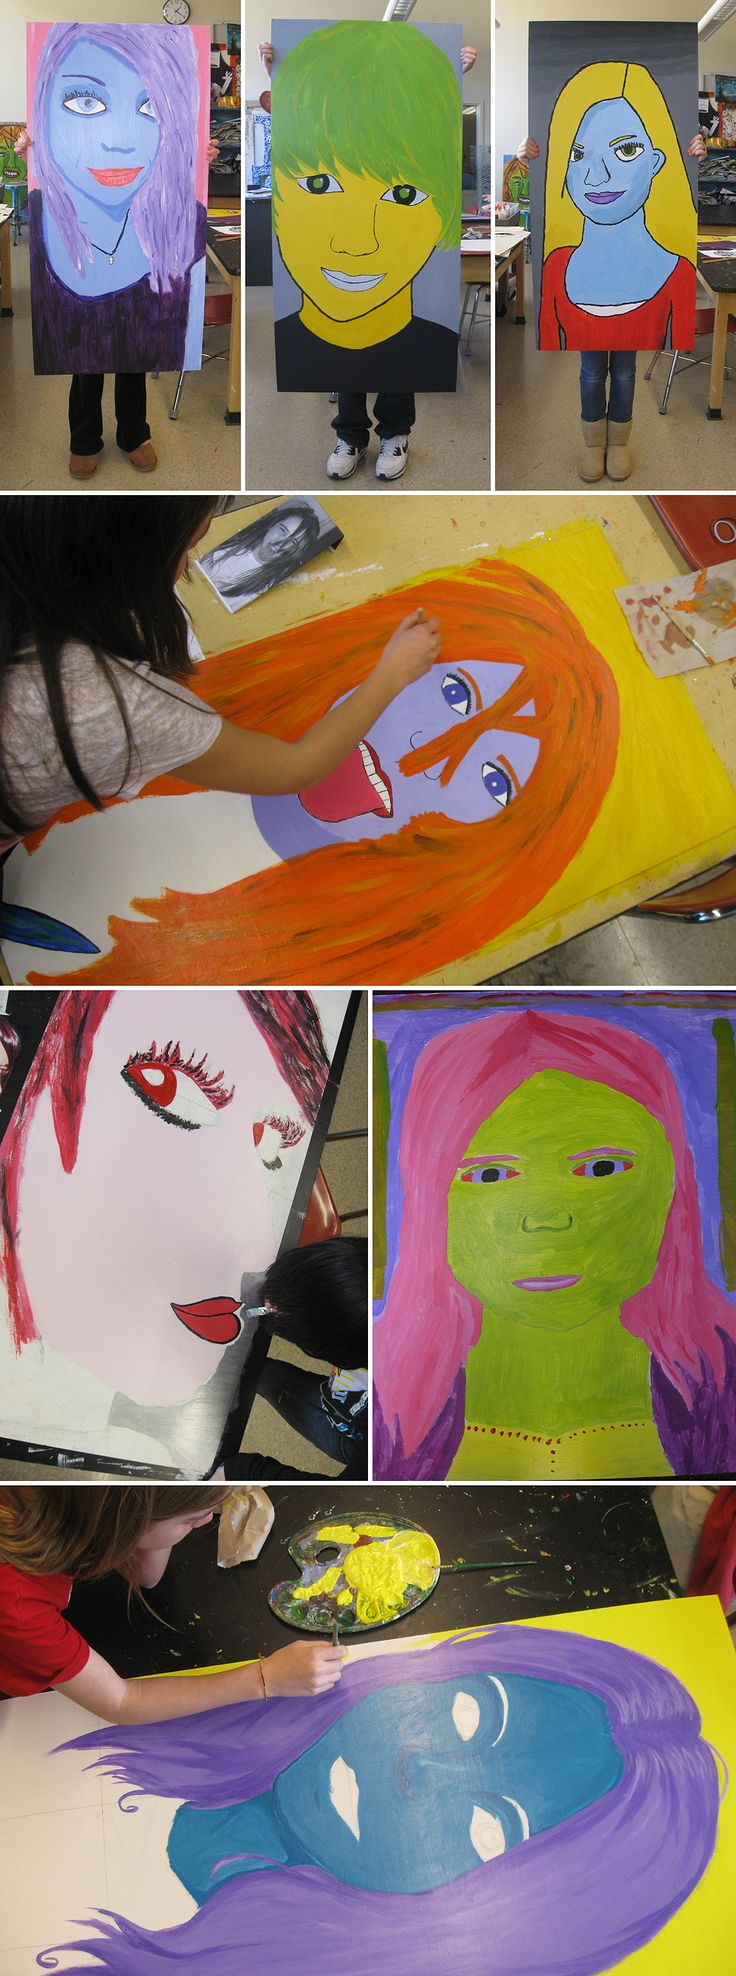 Amazing Junior High art blog. Can't access post URLs but you can scroll through to see artwork. self-portraits